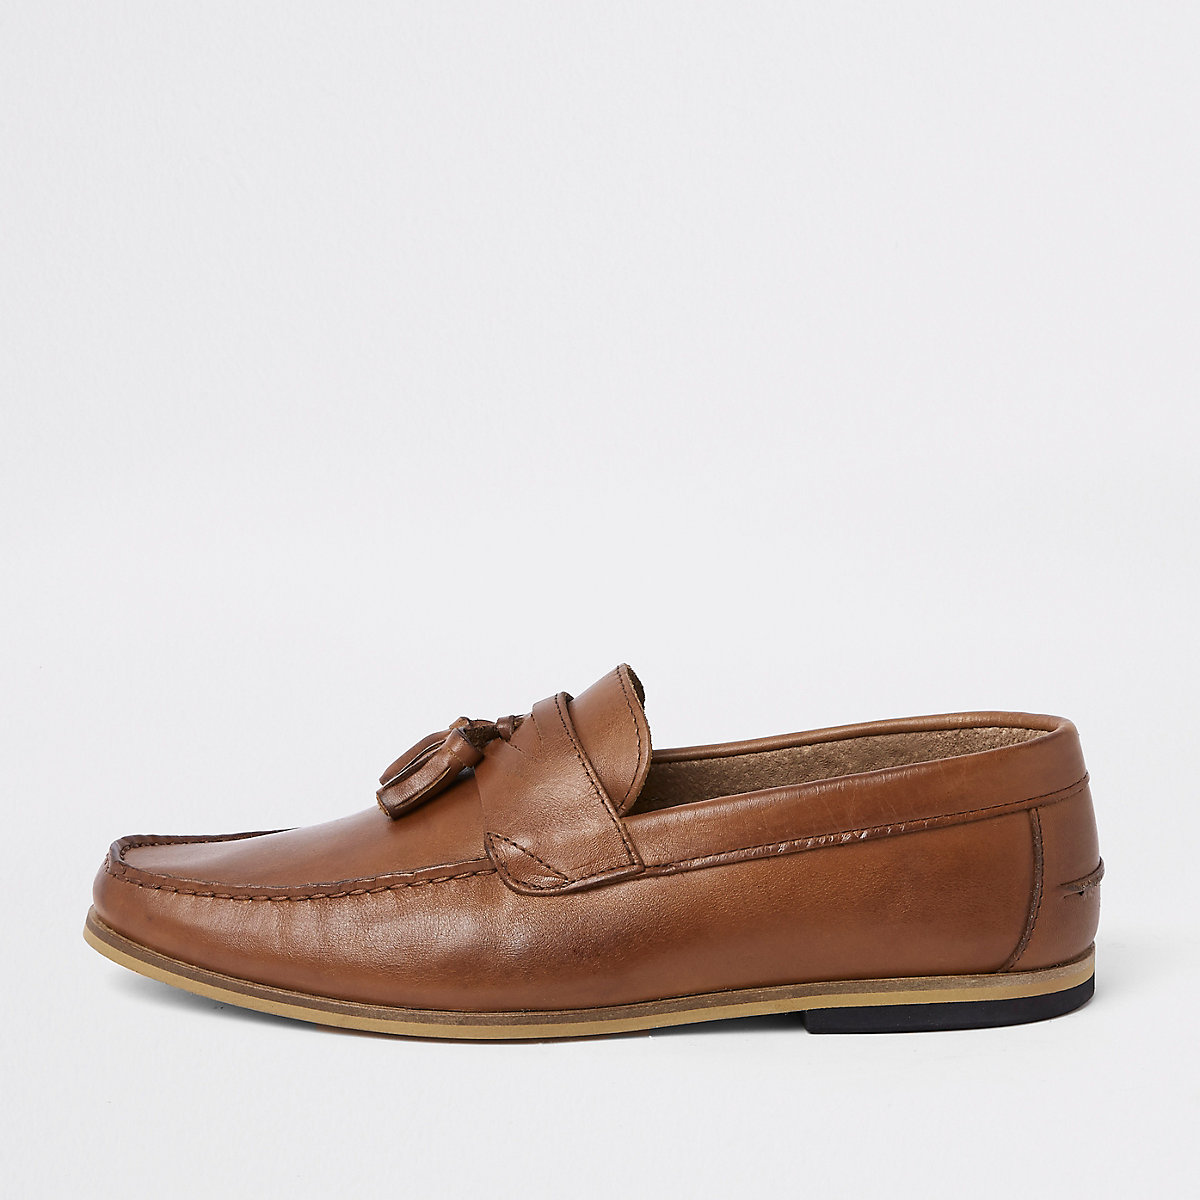 Brown wide fit leather tassel loafers